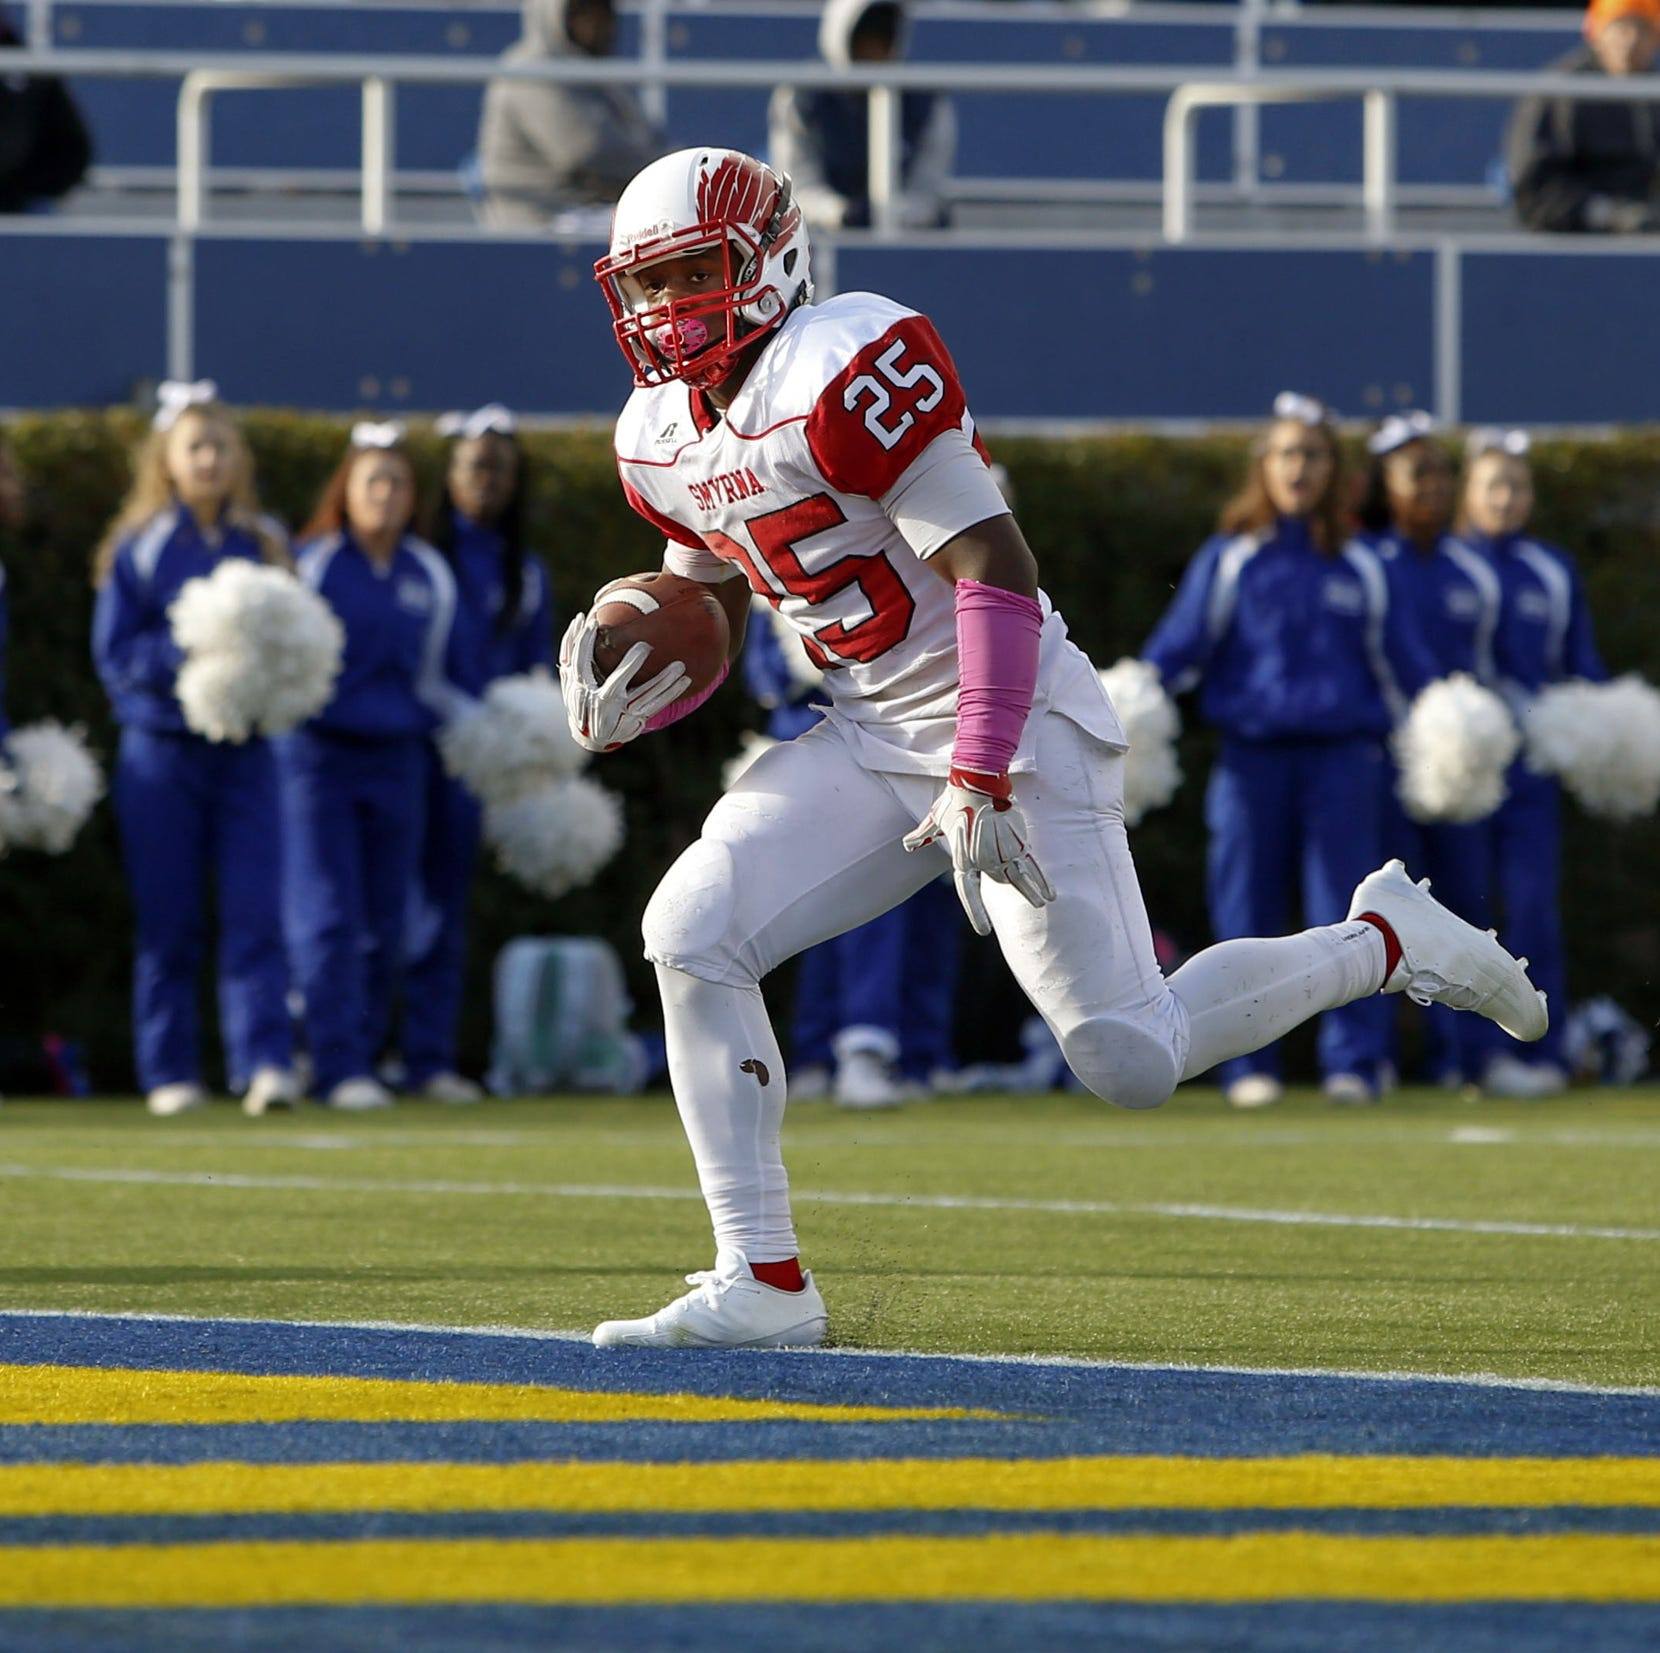 Smyrna running back Knight transferring to University of Delaware from ODU